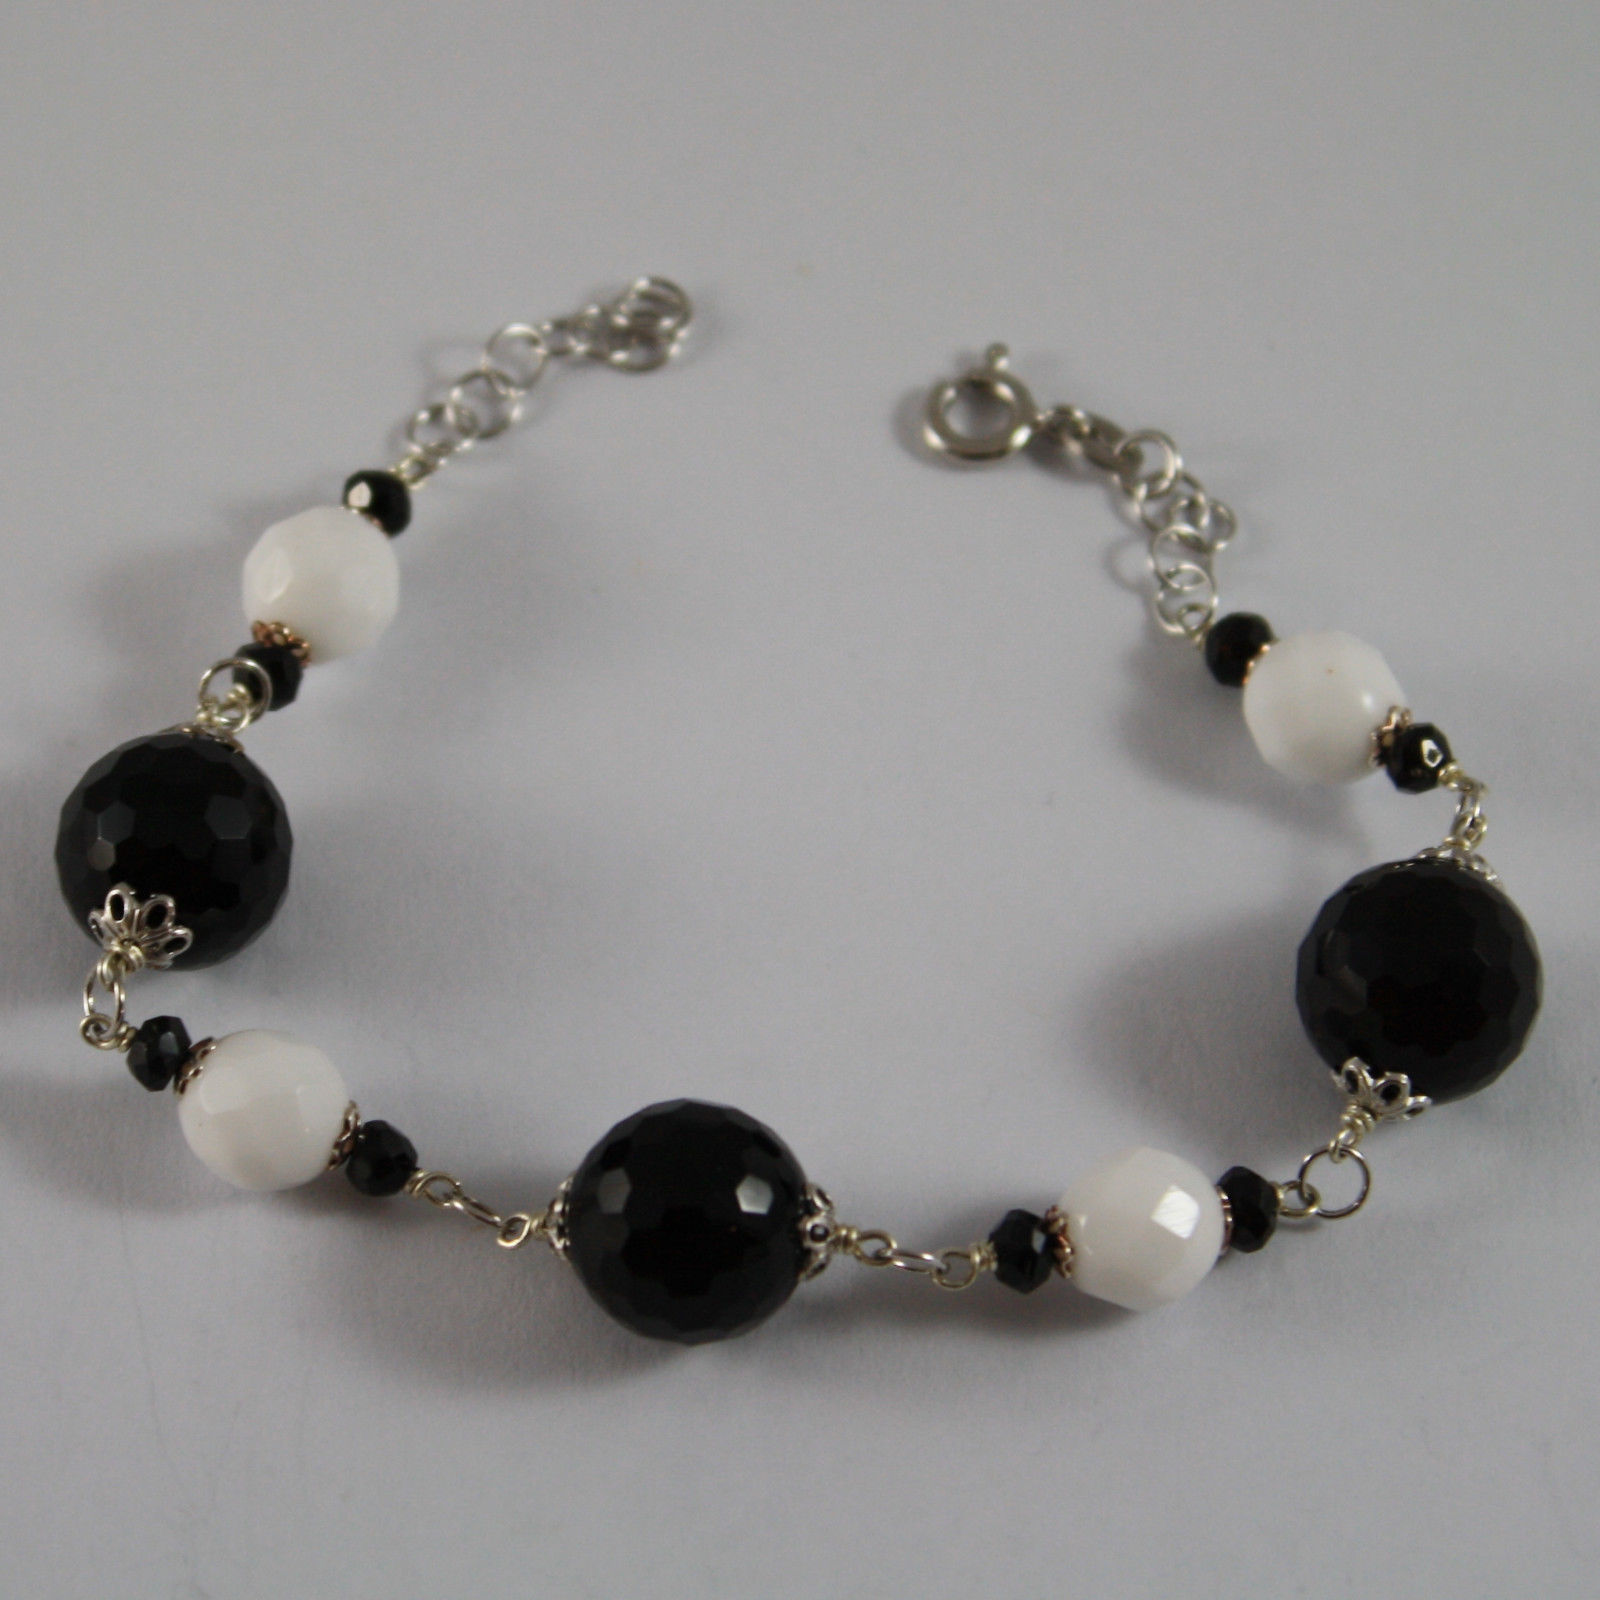 .925 RHODIUM SILVER BRACELET WITH BLACK ONYX AND WHITE AGATE